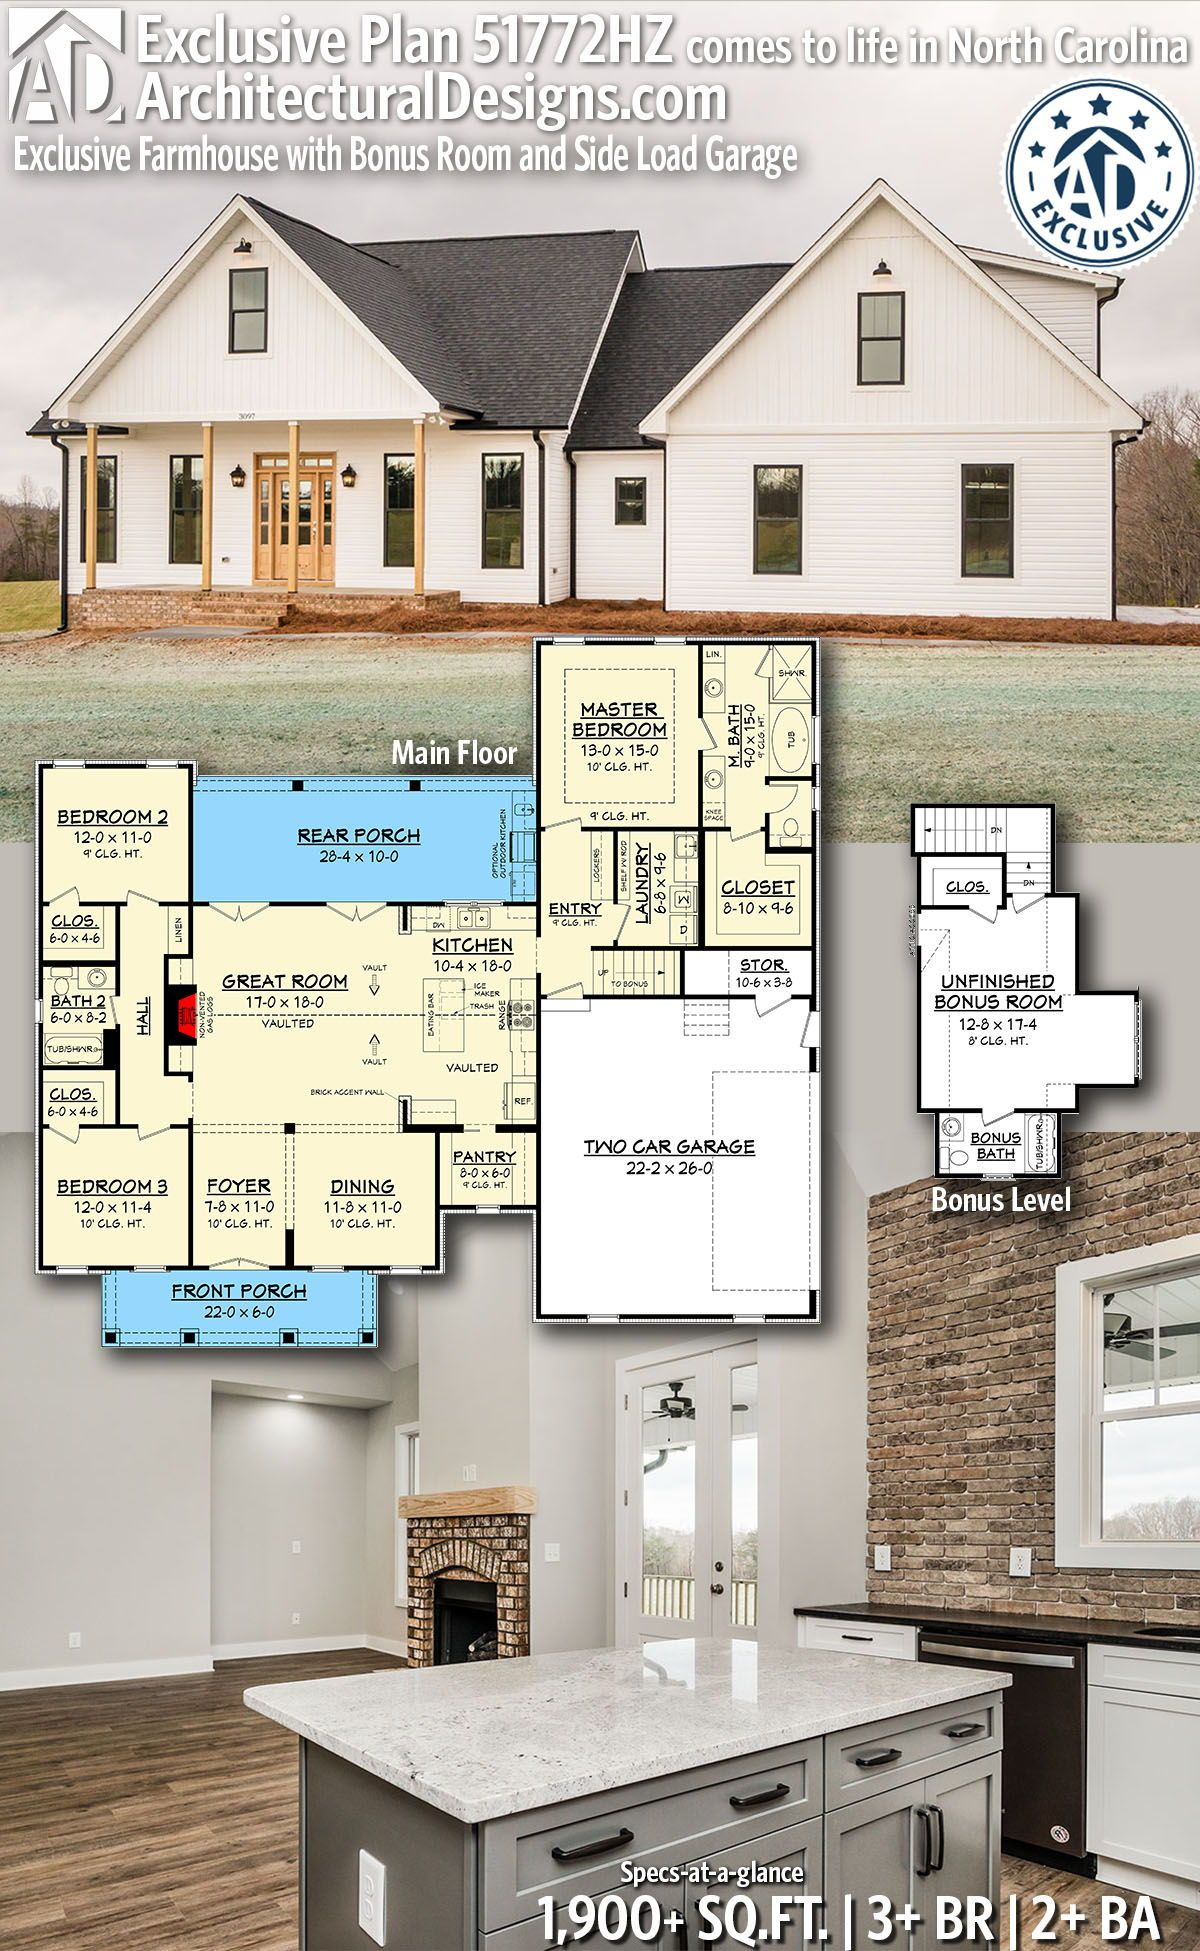 Pin On Architectural Designs Exclusive House Plans